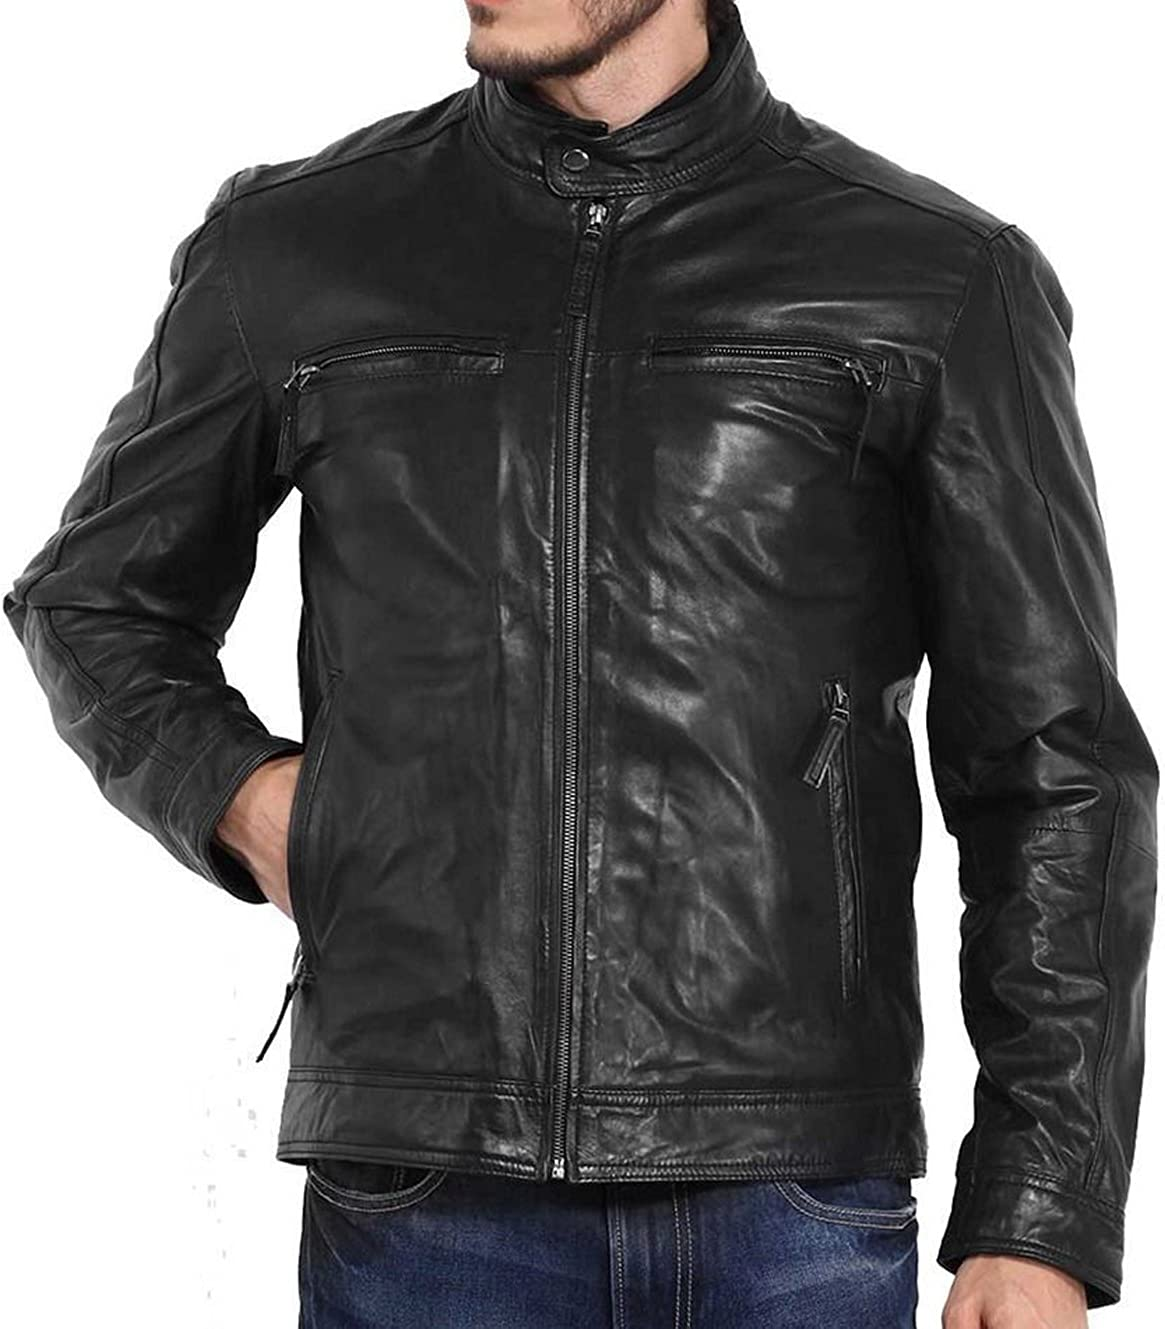 Kingdom Leather New Men Designer Genuine Lambskin Soft Biker Leather Jacket X1034